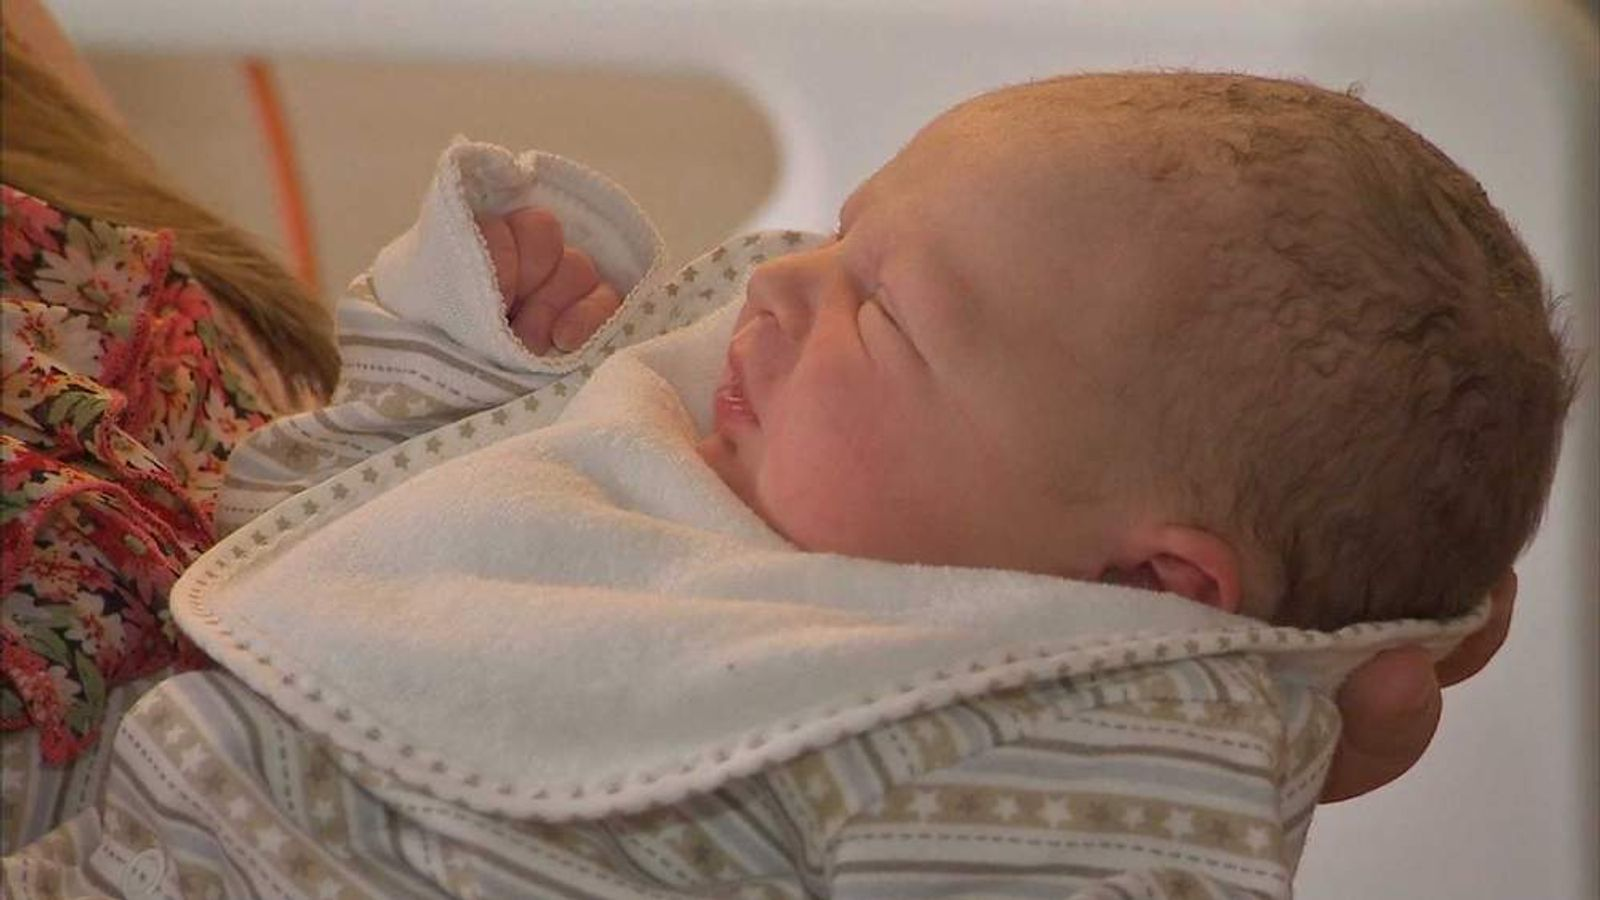 Child born on same day as Royal baby